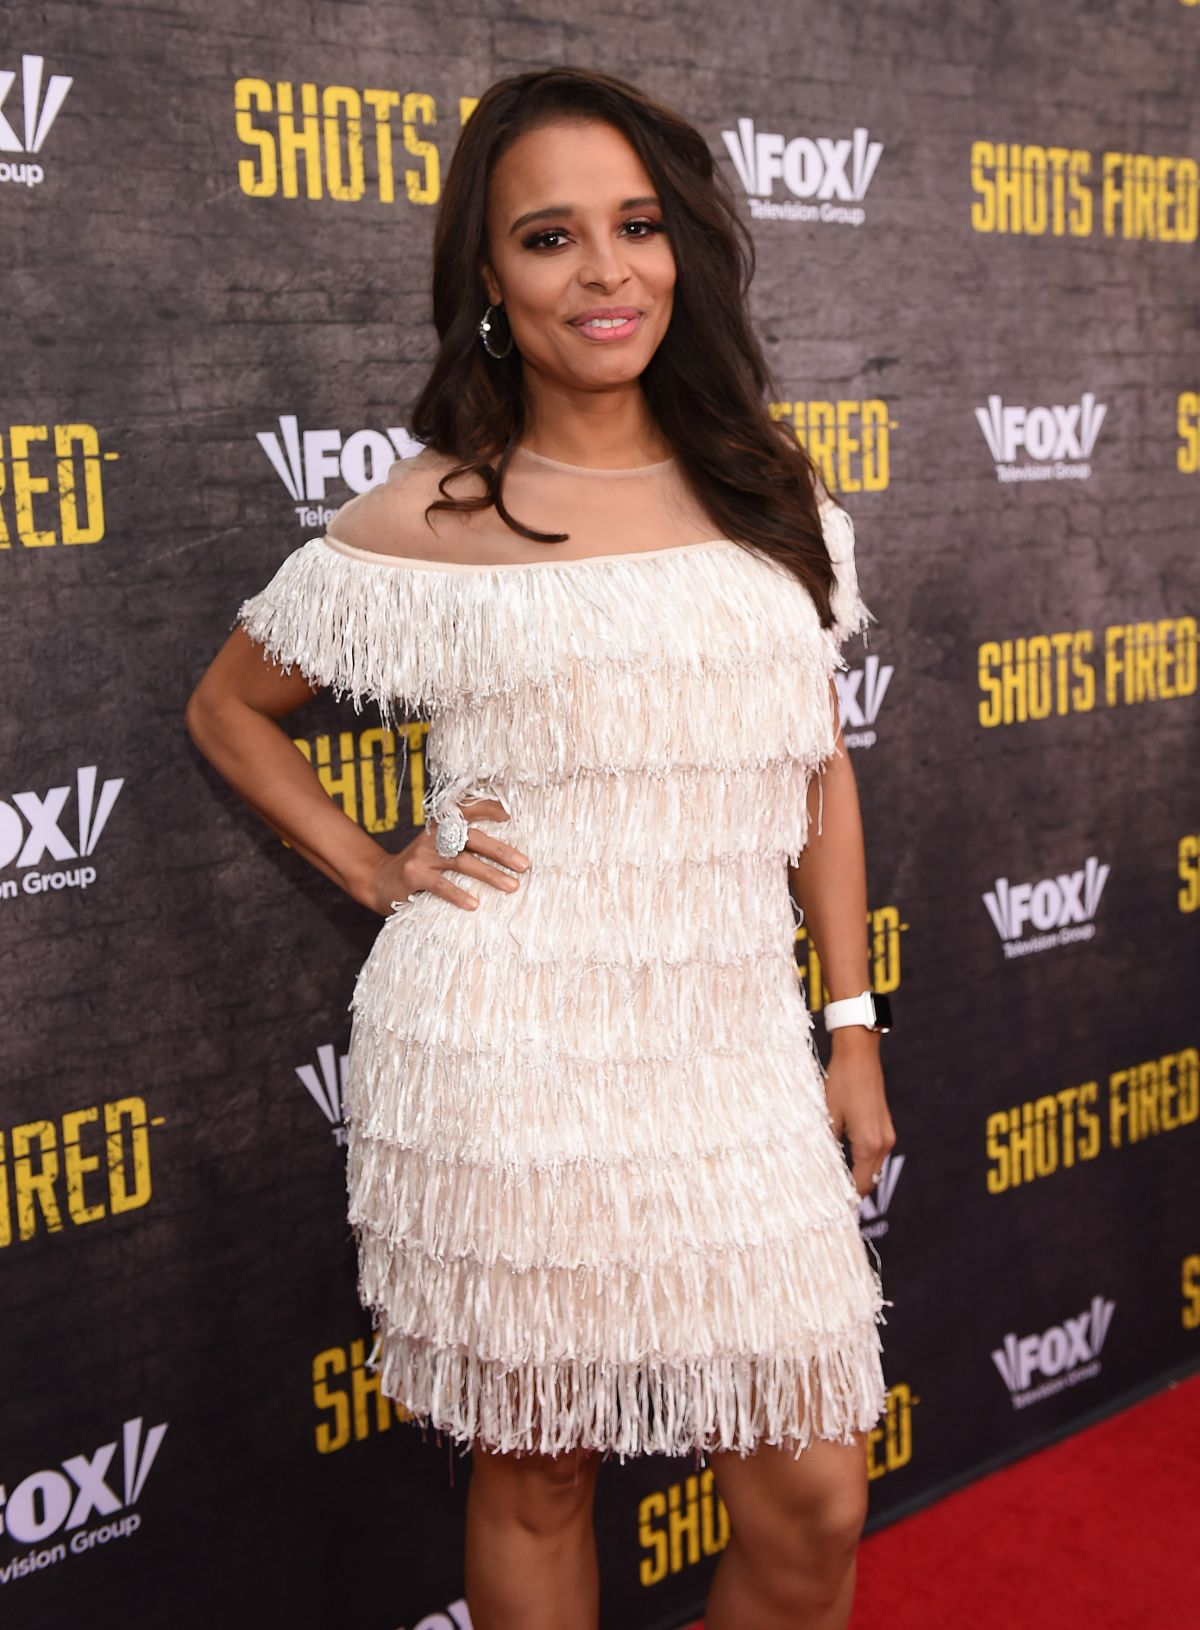 ANTONIQUE SMITH at Shots Fired Screening in Los Angeles 05/10/2017